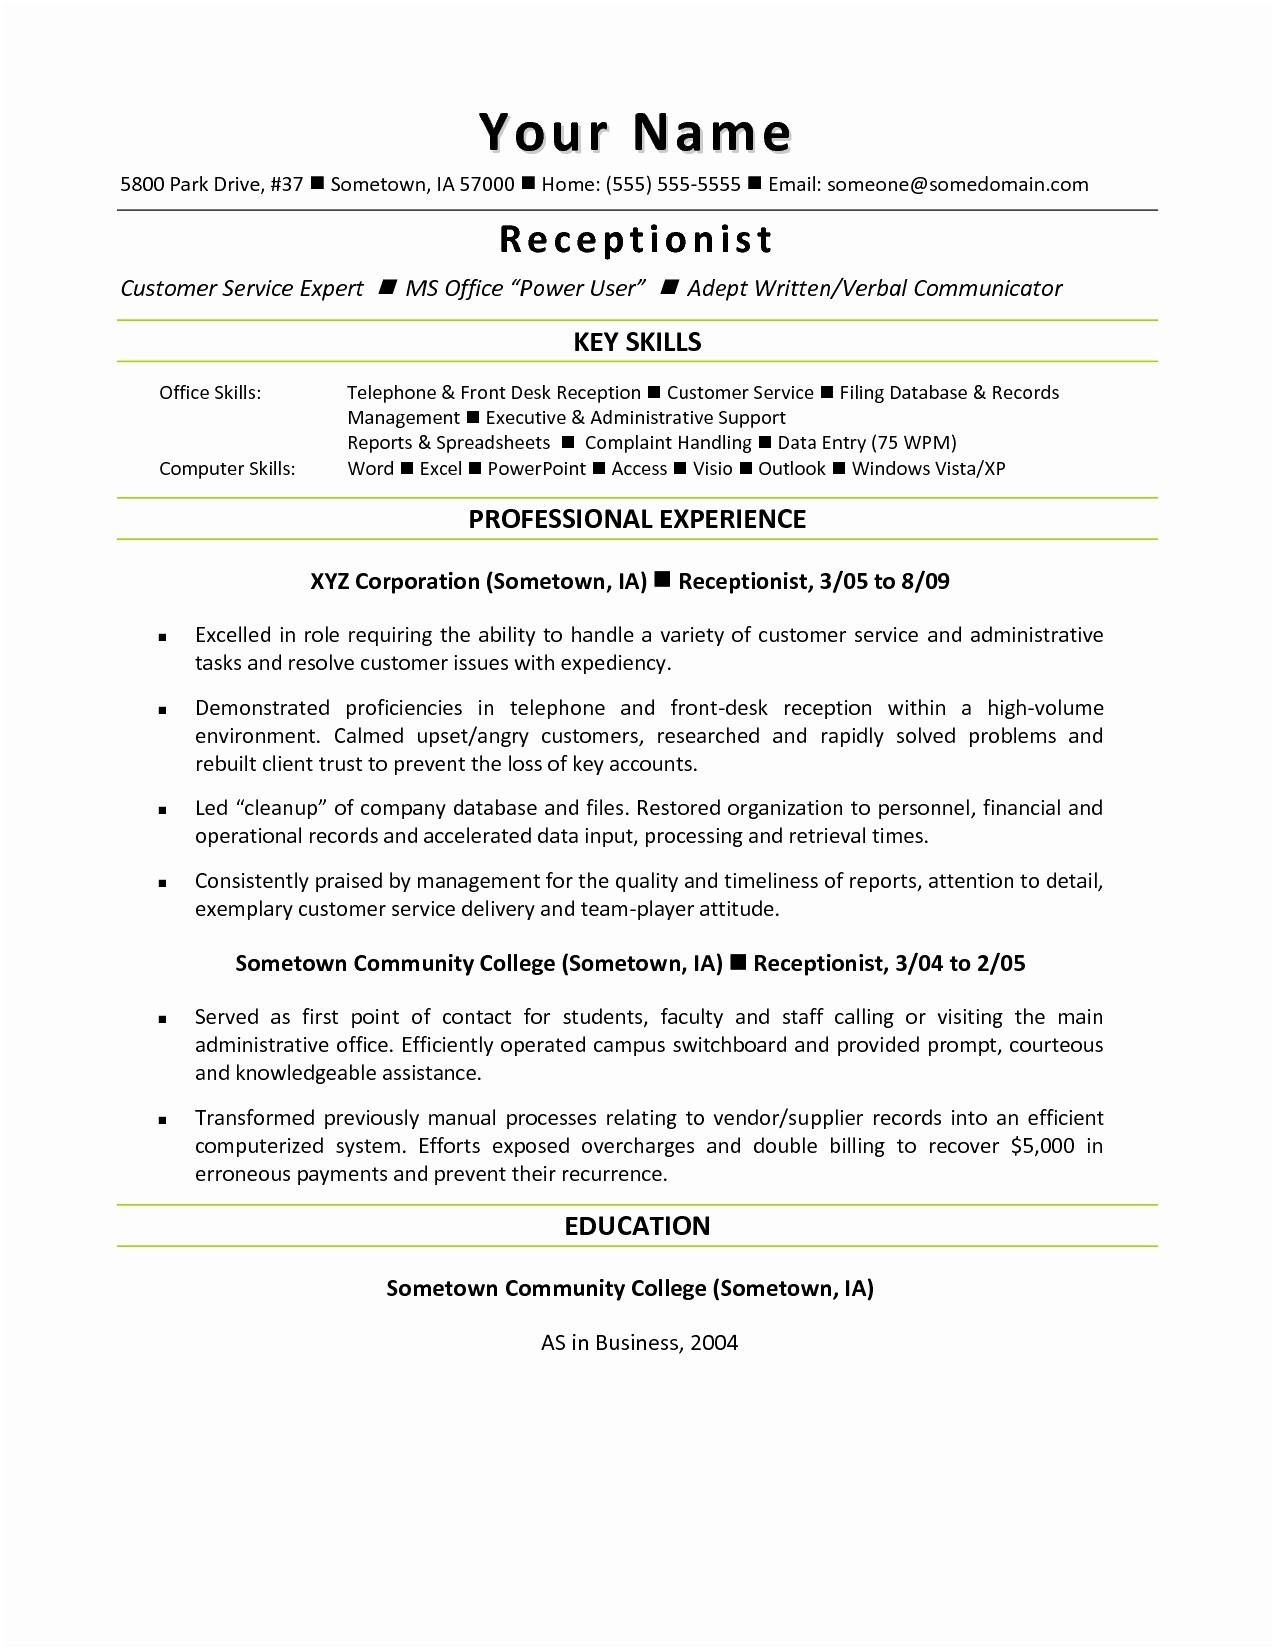 Employment Verification Letter Template Microsoft - Resume Microsoft Word Fresh Resume Mail format Sample Fresh